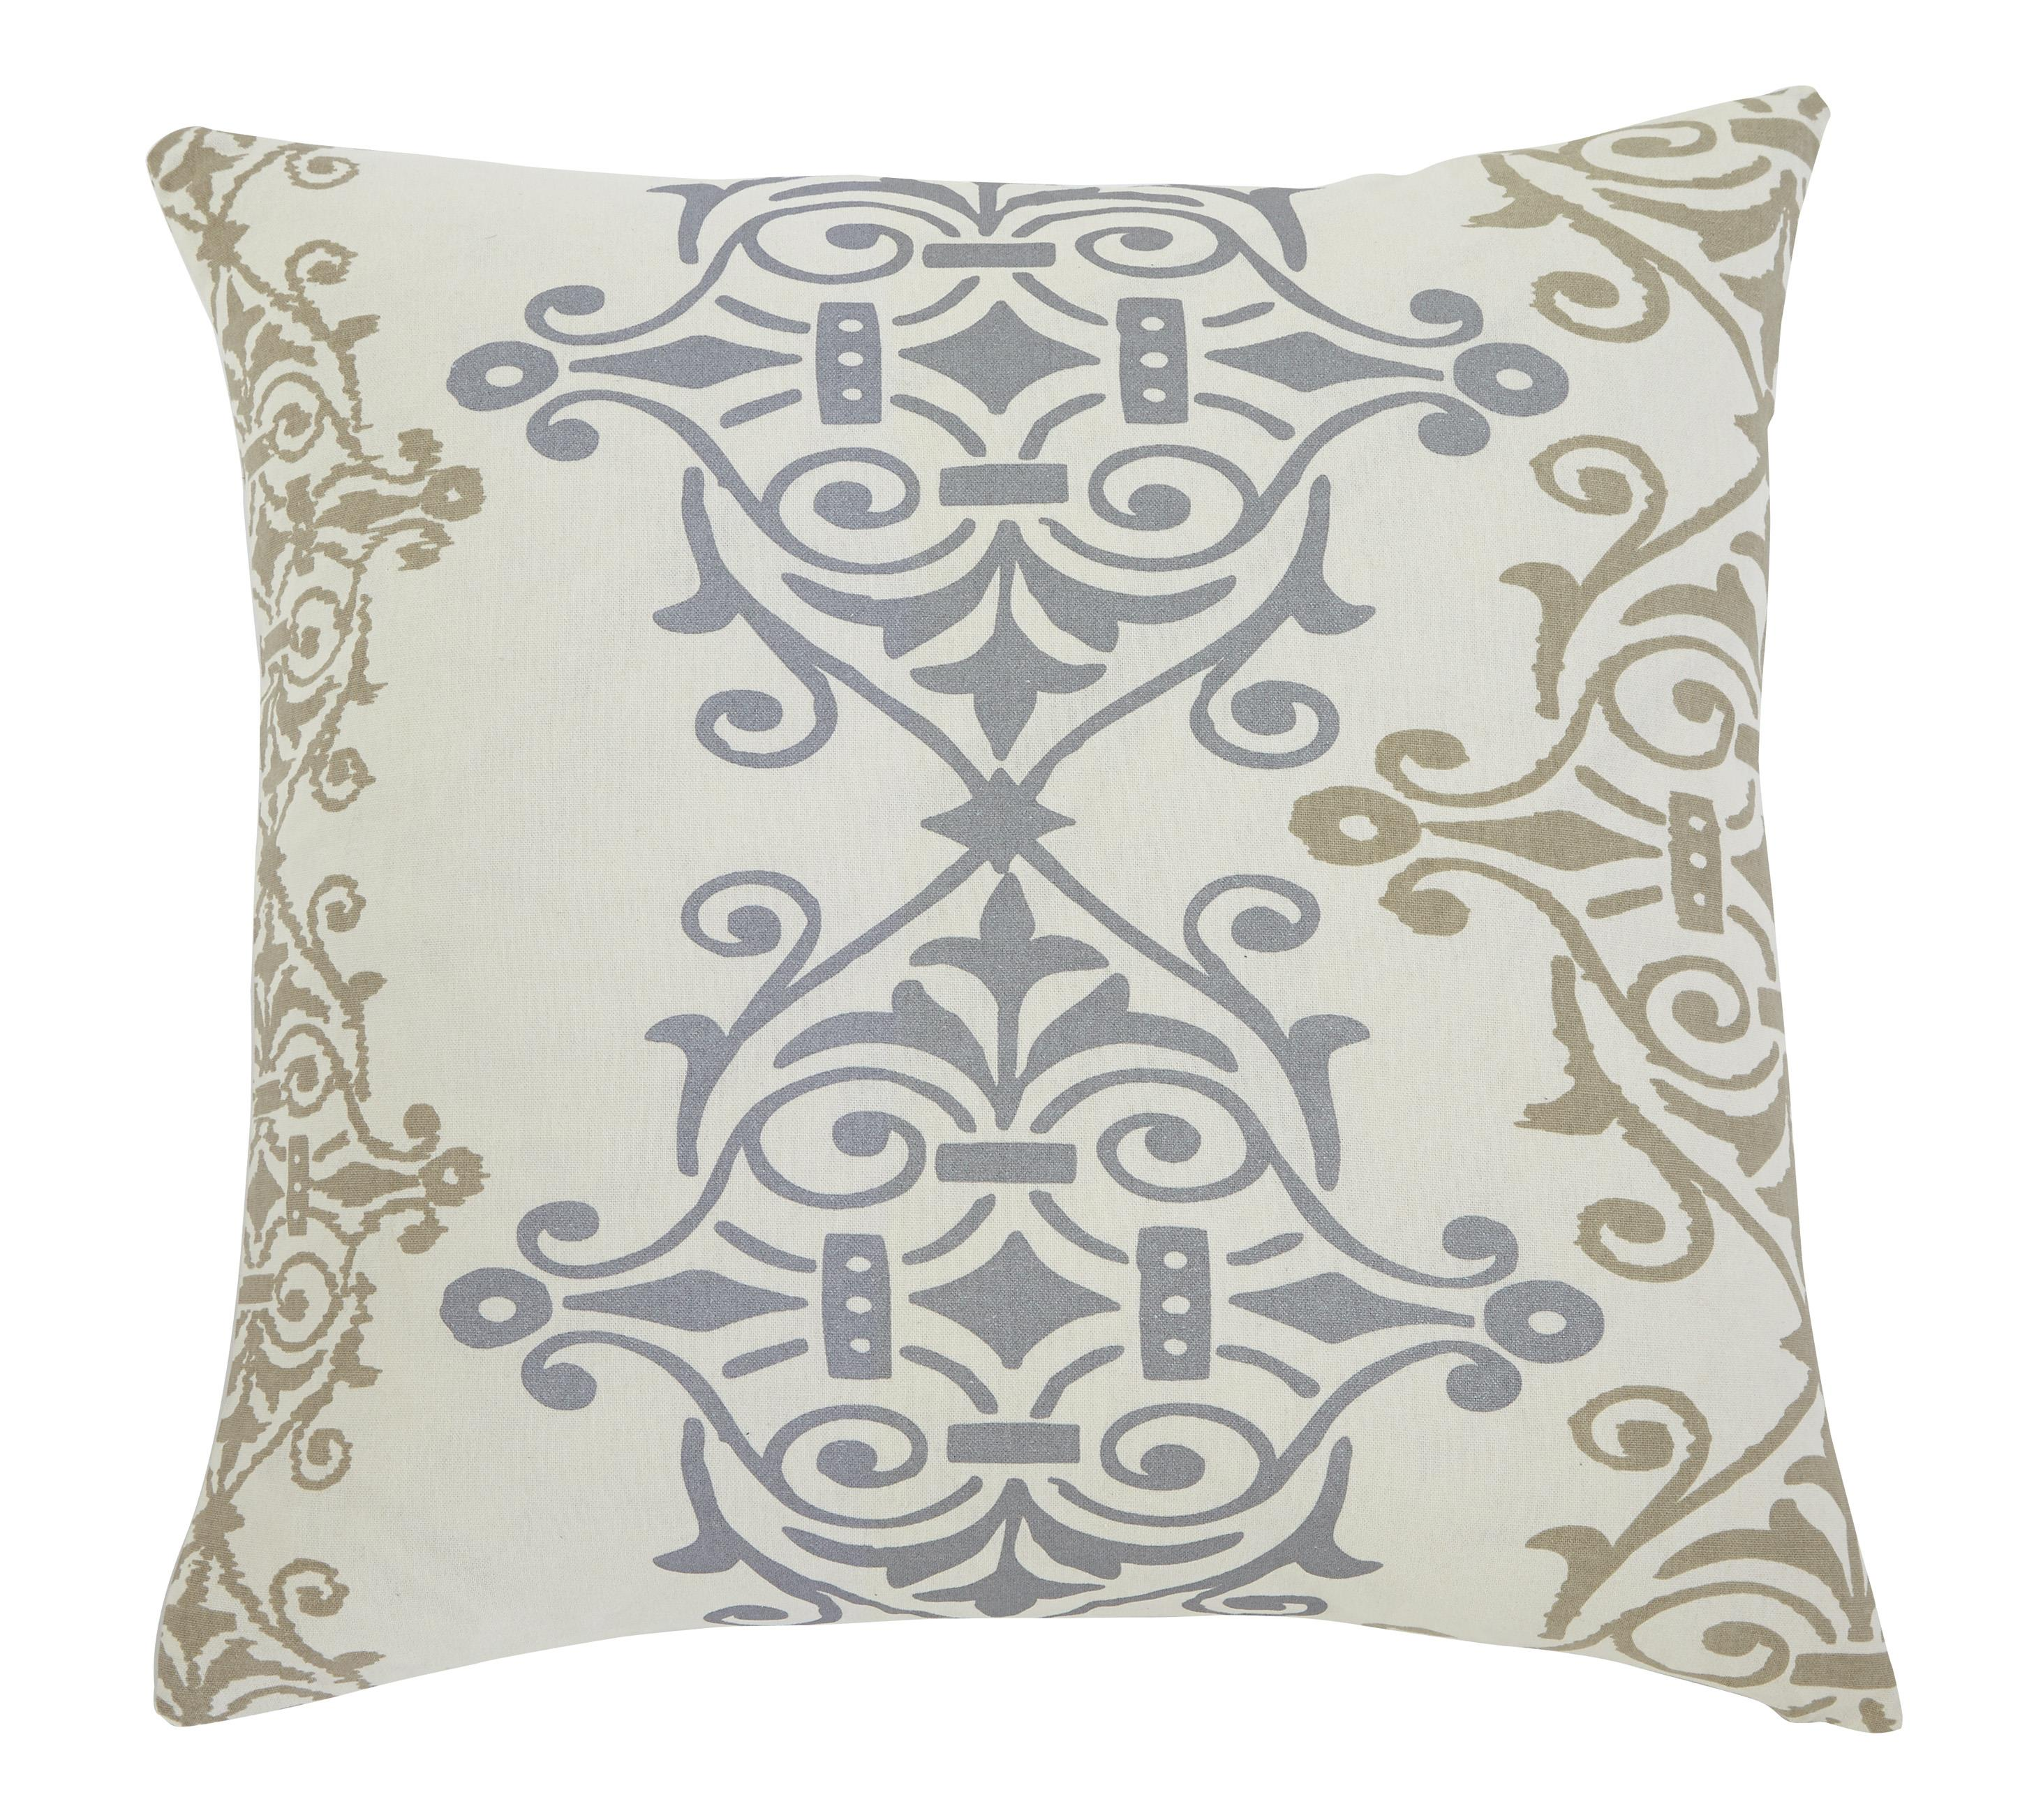 Signature Design by Ashley Pillows Scroll - Gray/Brown Pillow Cover - Item Number: A1000325P